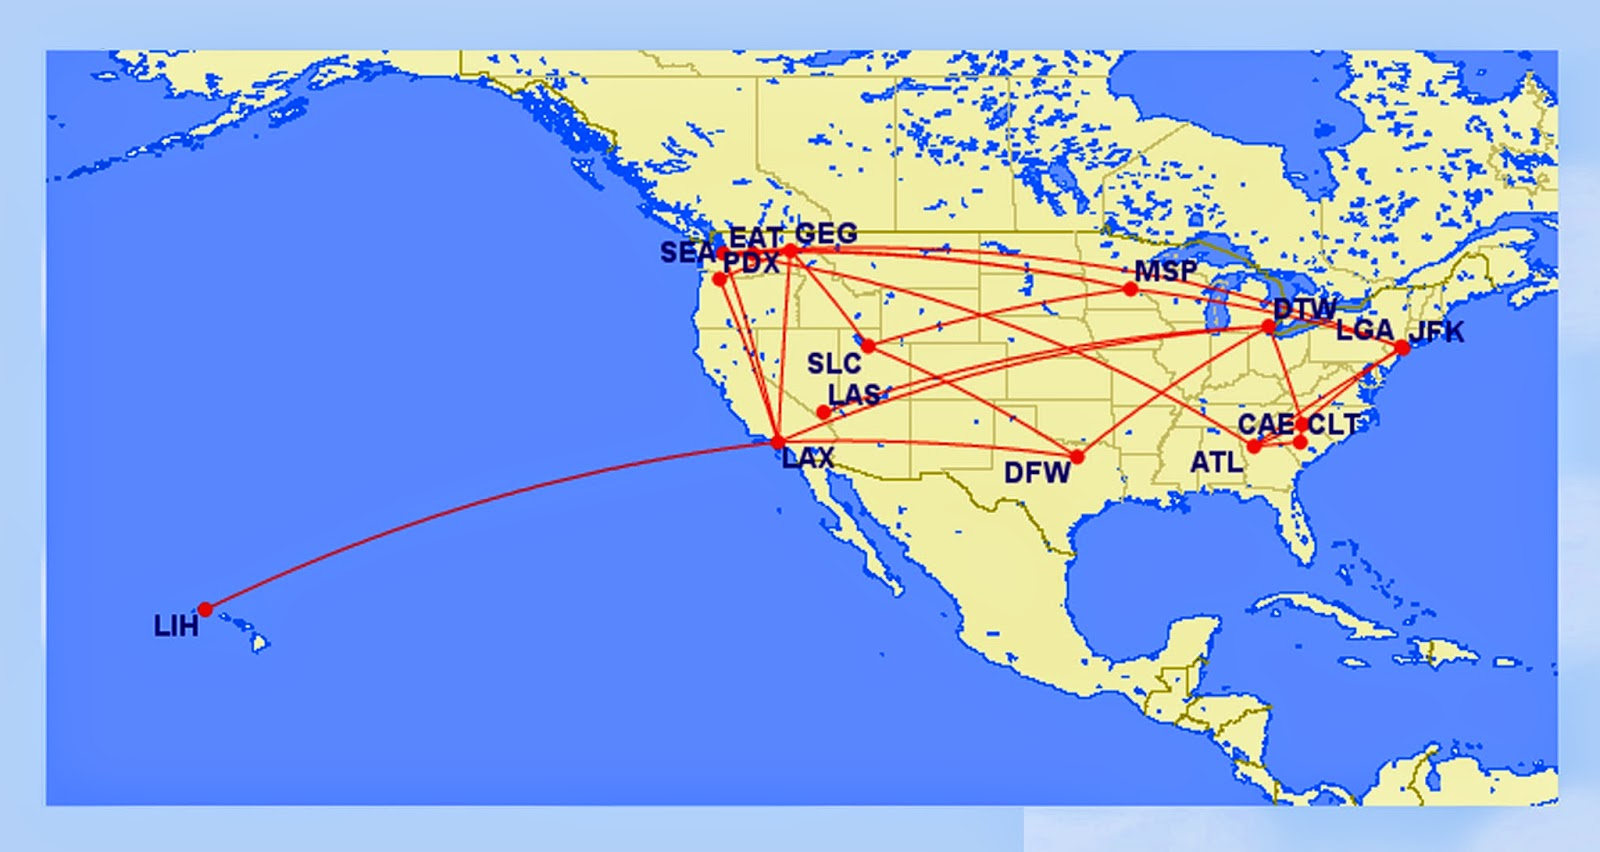 i have greatly benefitted by the battle in seattle between alaska delta airlines although my earlier thoughts this year regarding flying delta and